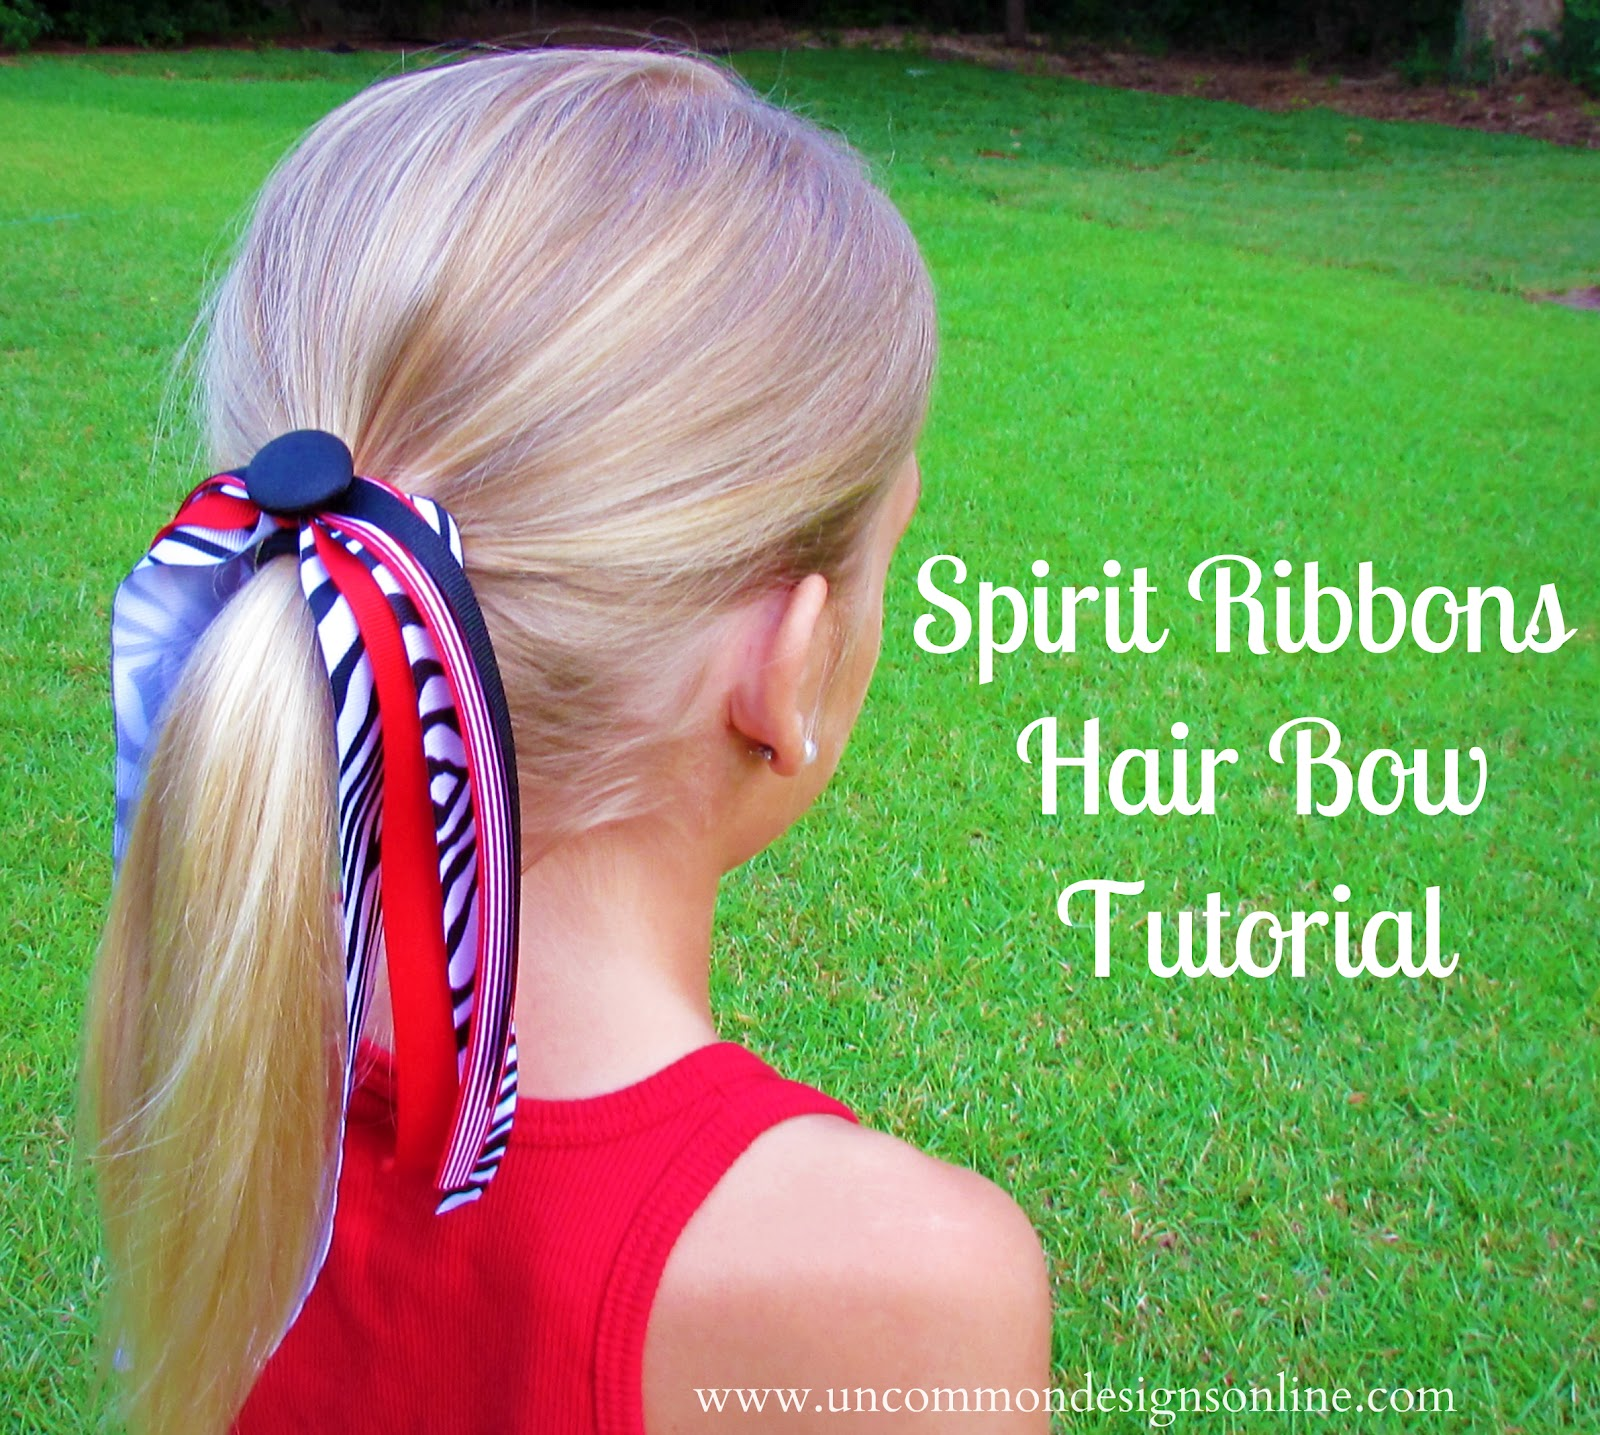 How To Make Spirit And Cheer Ribbons Hair Bows With The I Top Howtotiethebowtieknottyinginstructionspng Tutorial My Girls Both Love Tumble In Fact We Had A Birthday Party For Oldest Decided All Of Guests